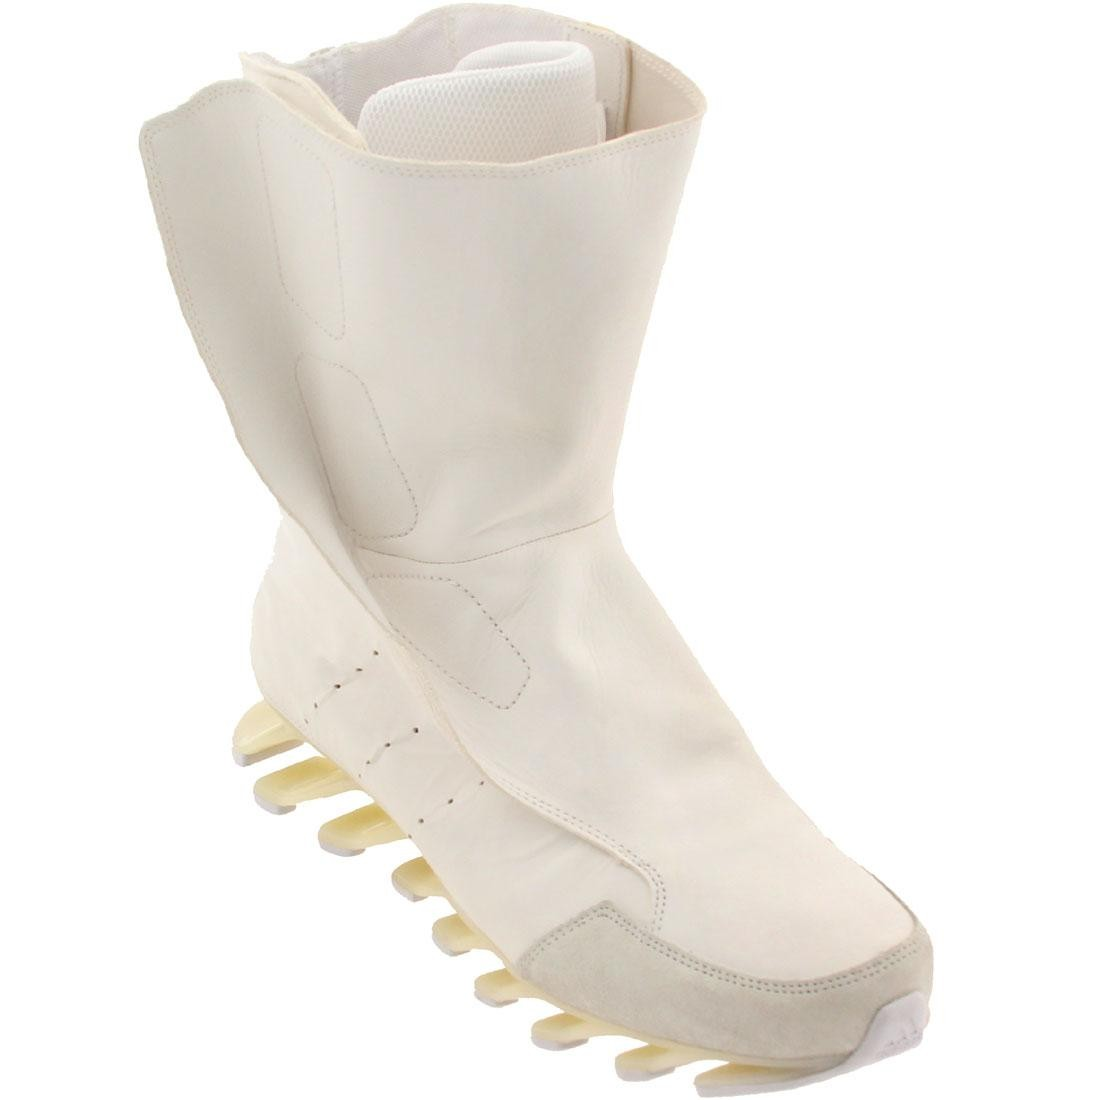 best loved 7ec39 c76b3 Adidas x Rick Owens Men Springblade High Boots (white / white / white)